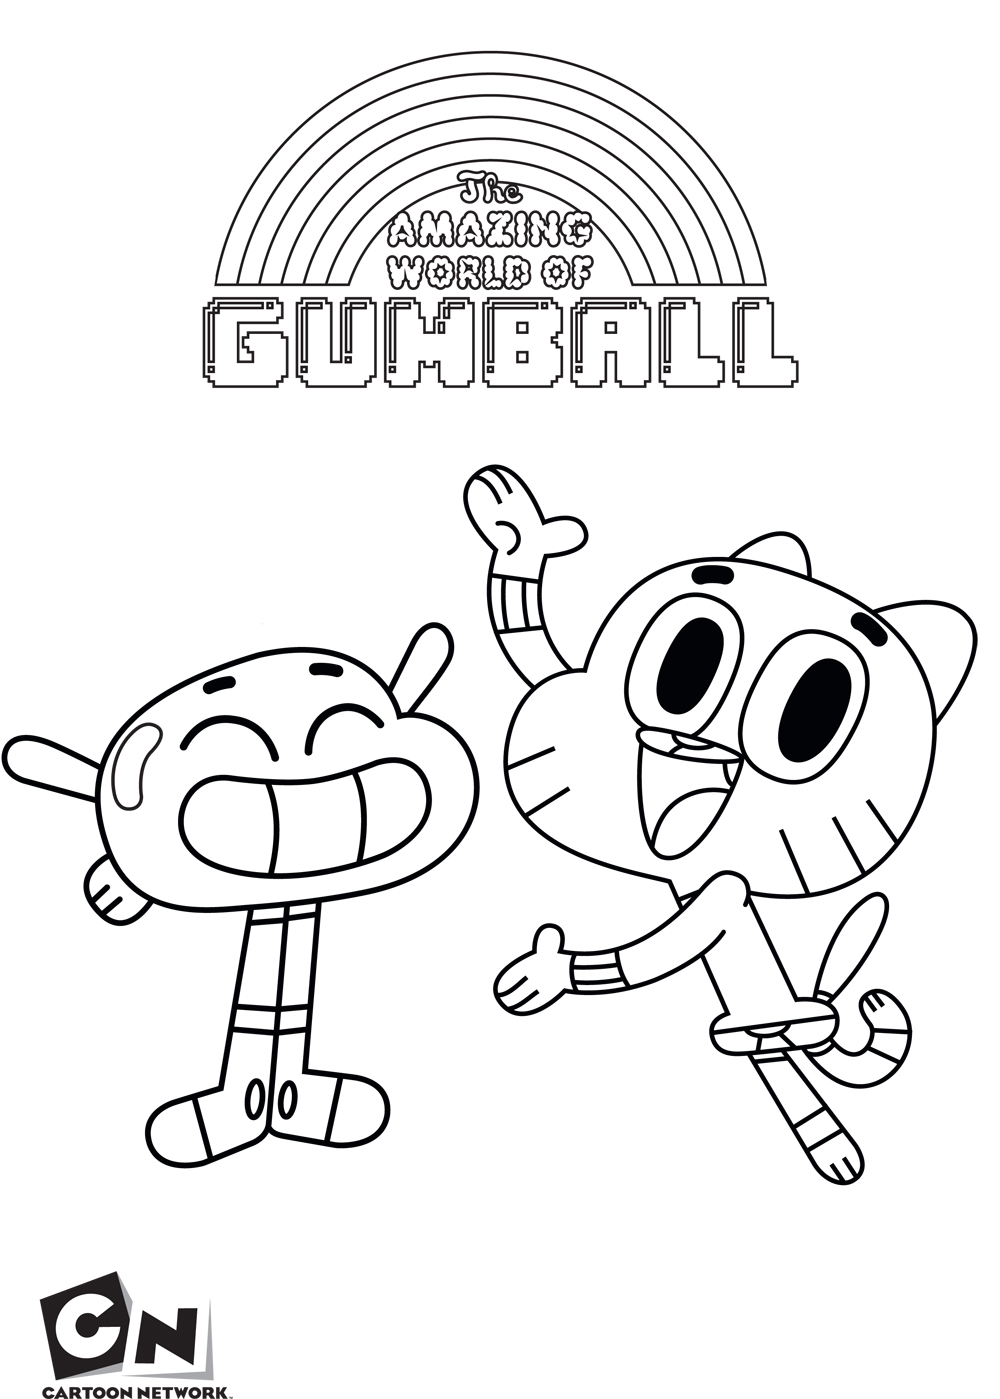 Error en El Increible Mundo de Gumball: El Karateka - YouTube